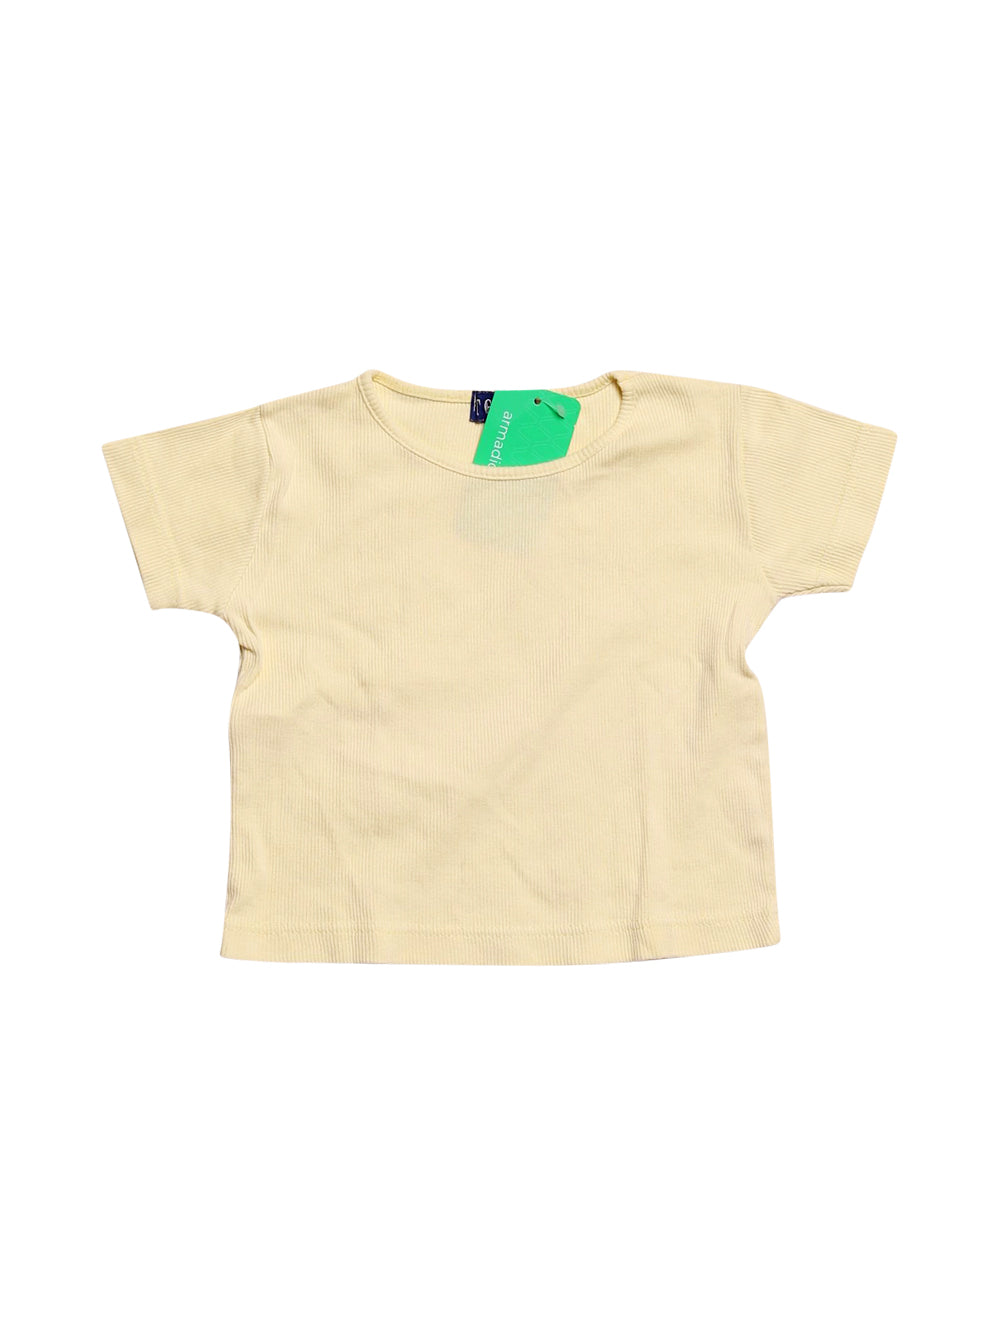 Front photo of Preloved today Yellow Girl's t-shirt - size 2-3 yrs